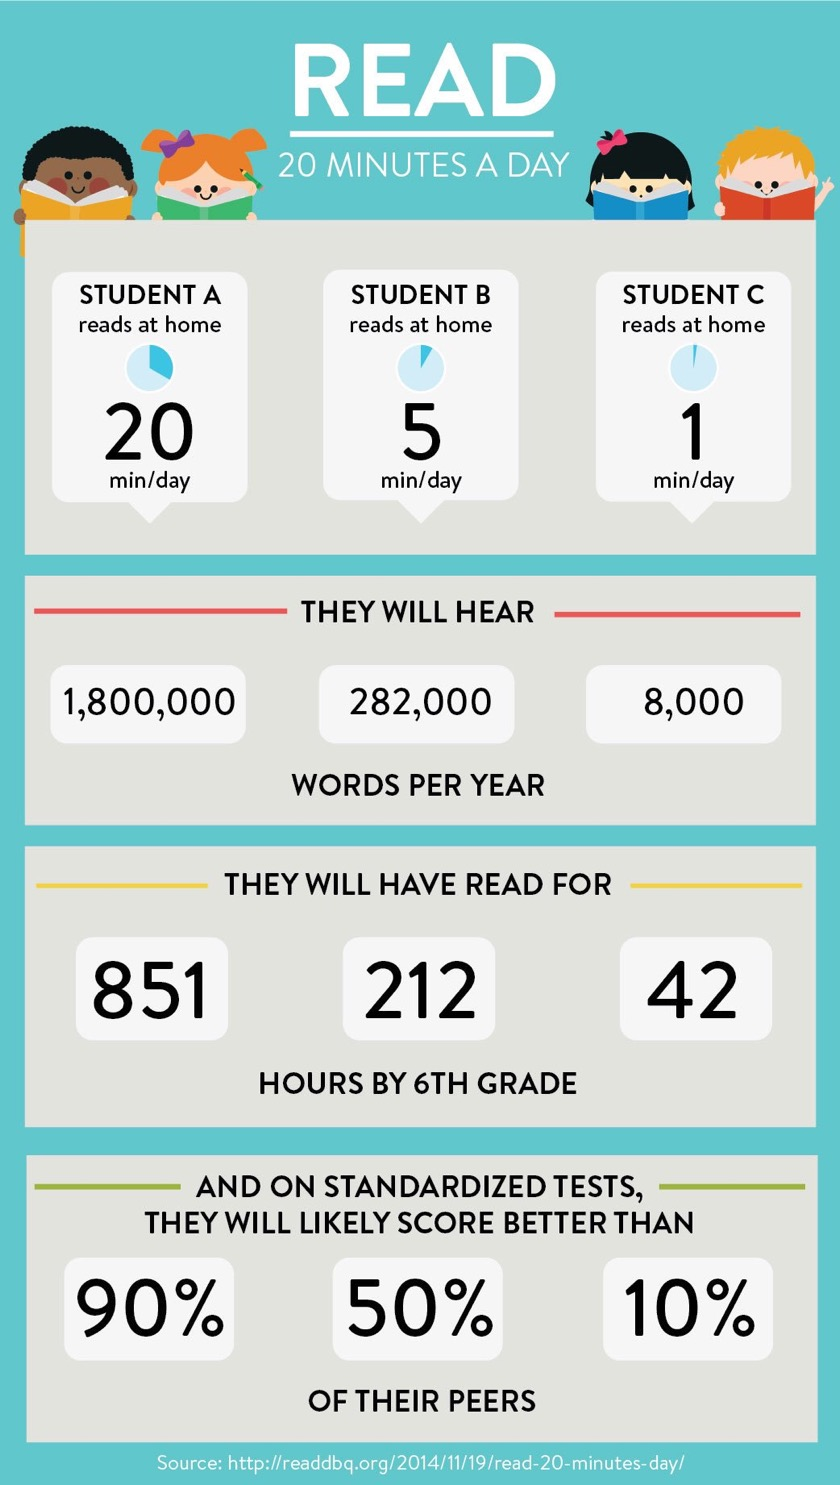 Why you should read 20 minutes a day